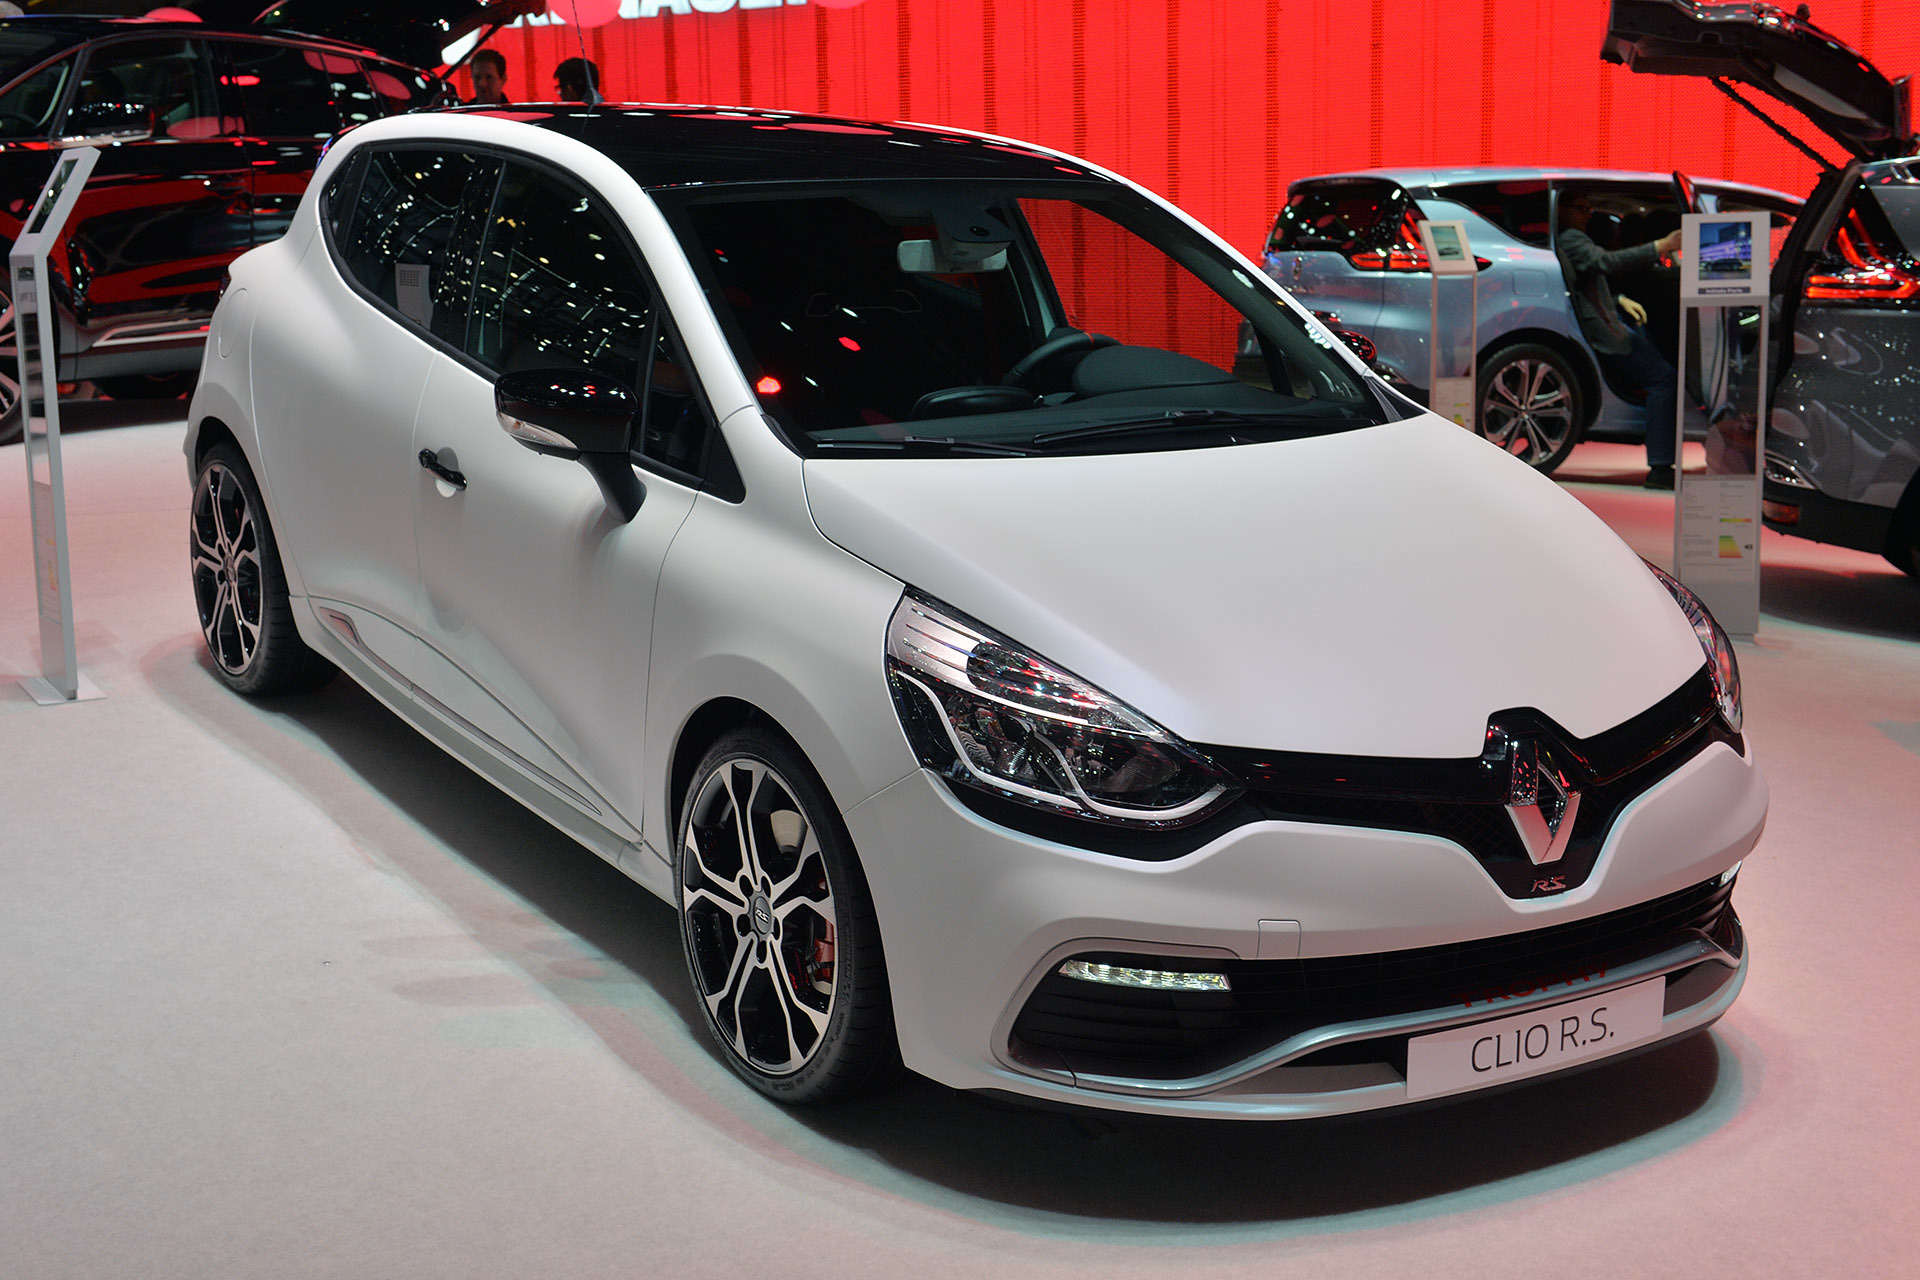 Renault Clio Rs 220 Trophy Geneva 2015 Mar 4 2015 Photo Gallery